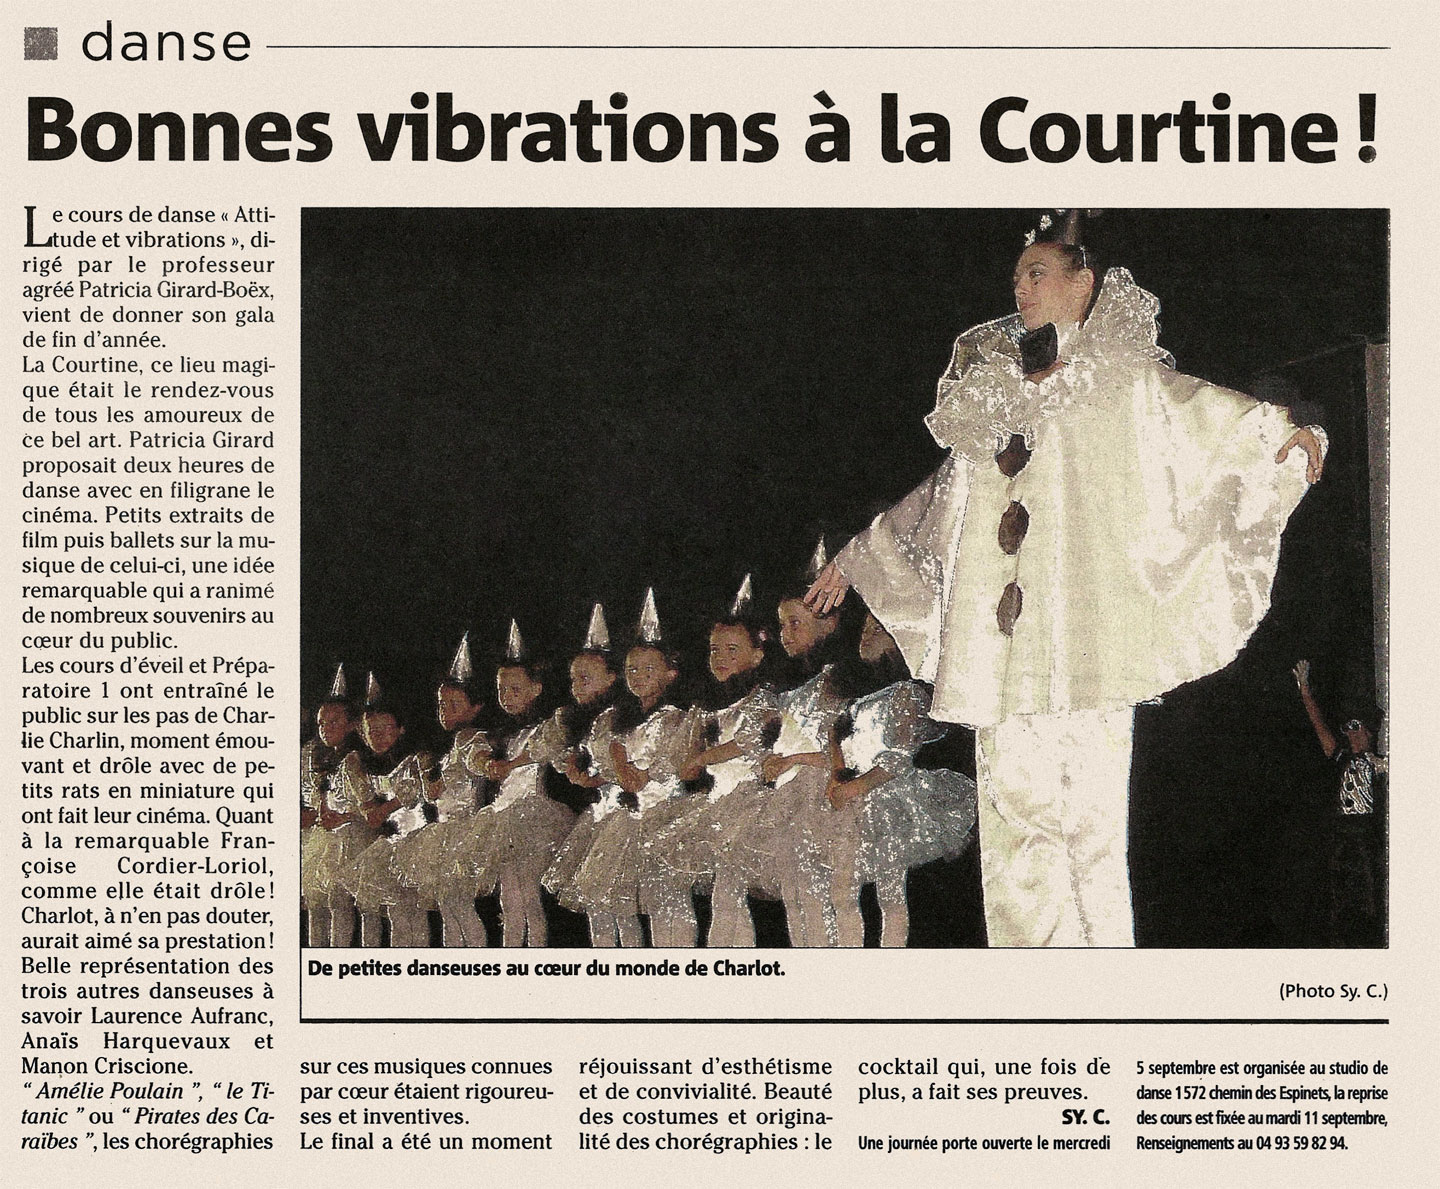 Bonnes vibrations à la Courtine